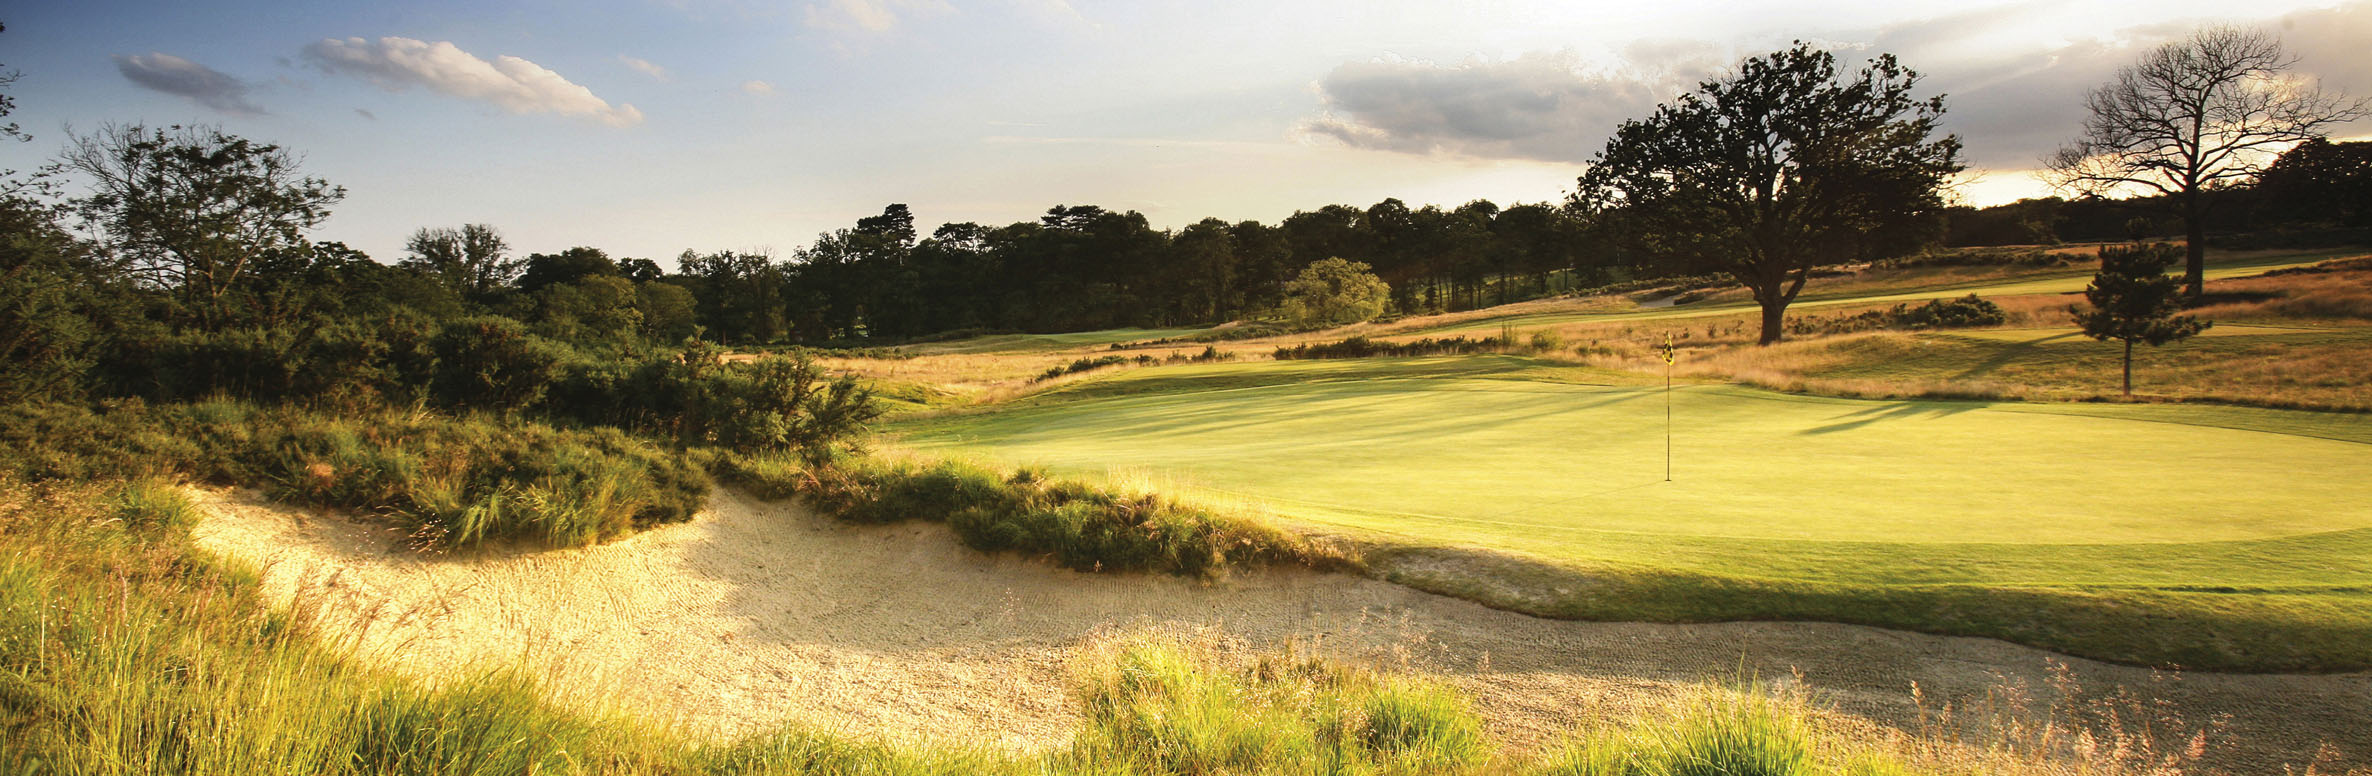 Golf Course Image - Queenwood Golf Club No. 8